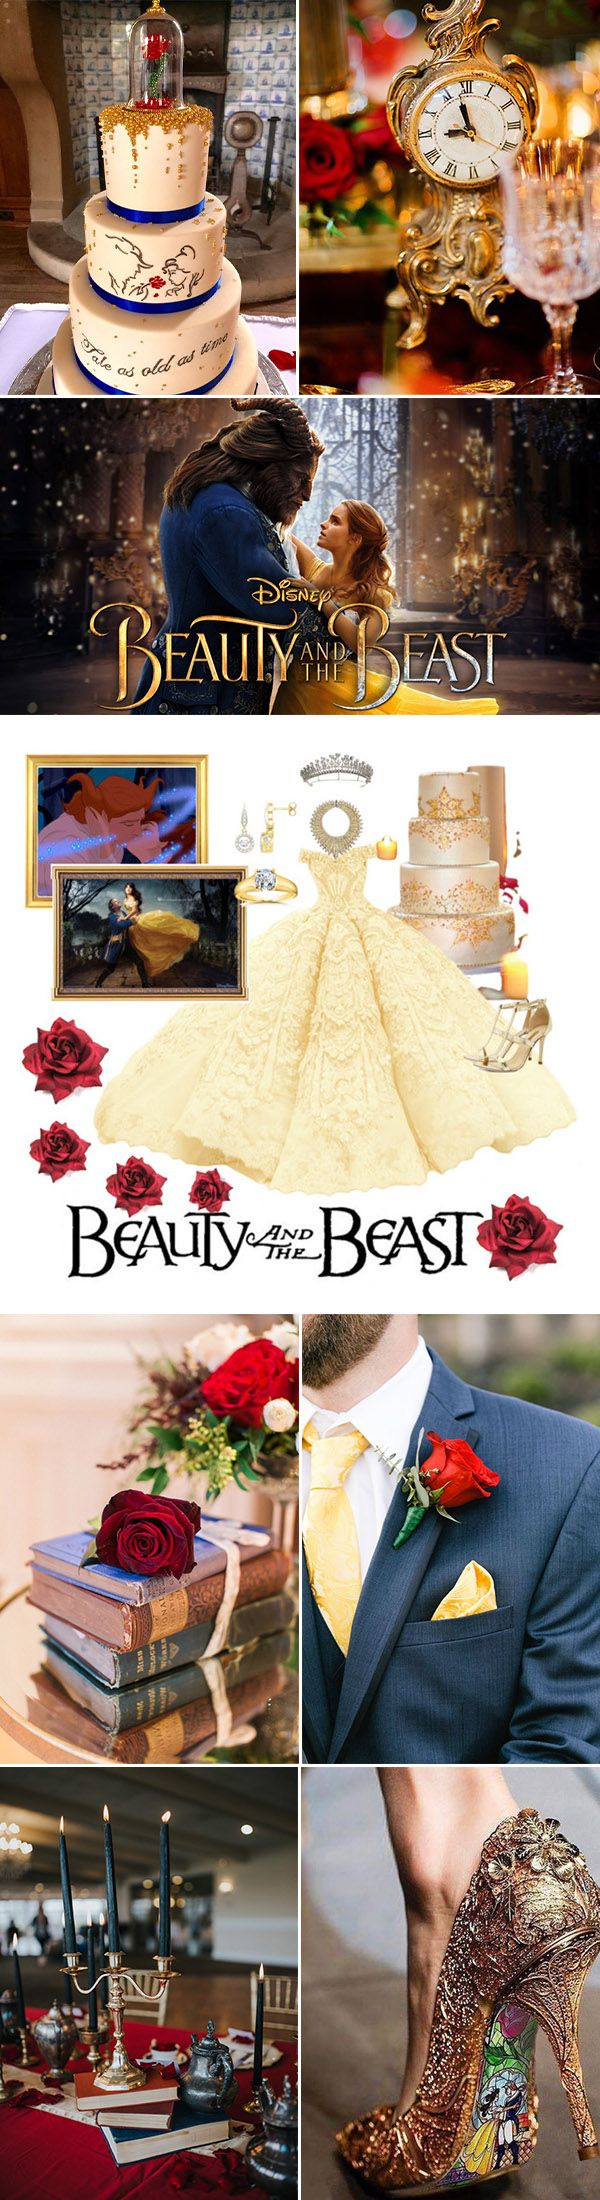 enchanting beauty and the beast disney theme wedding ideas